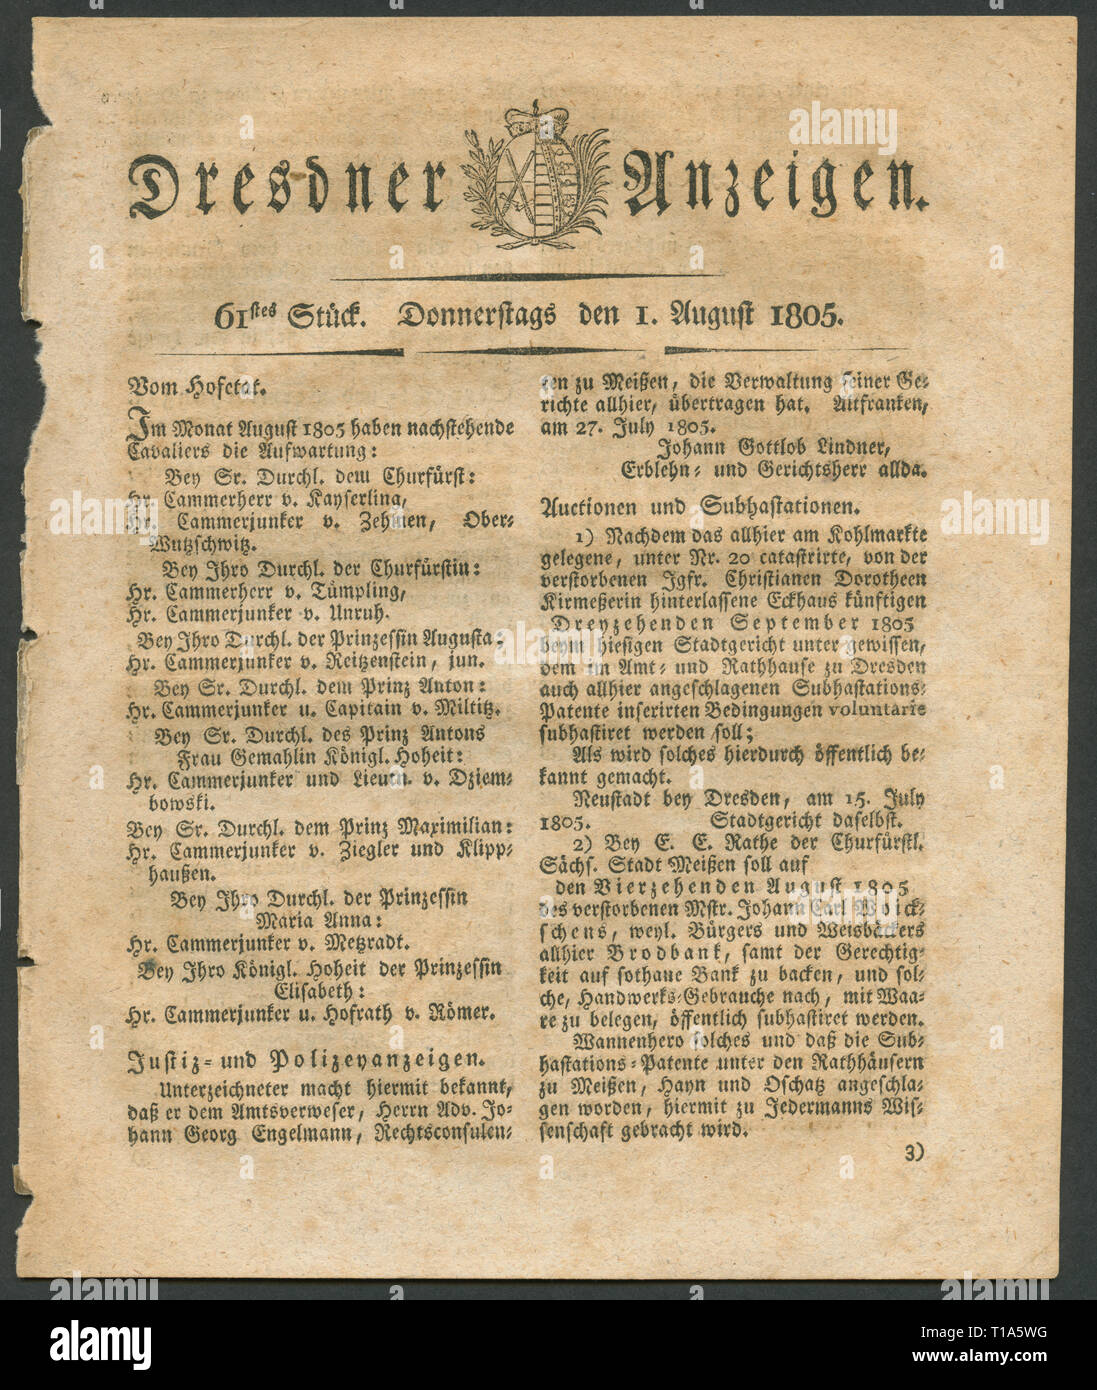 In Germania, in Sassonia, Dresda, storico giornale ' Dresdner Anzeigen', pubblicato 1.8.1805., Additional-Rights-Clearance-Info-Not-Available Immagini Stock